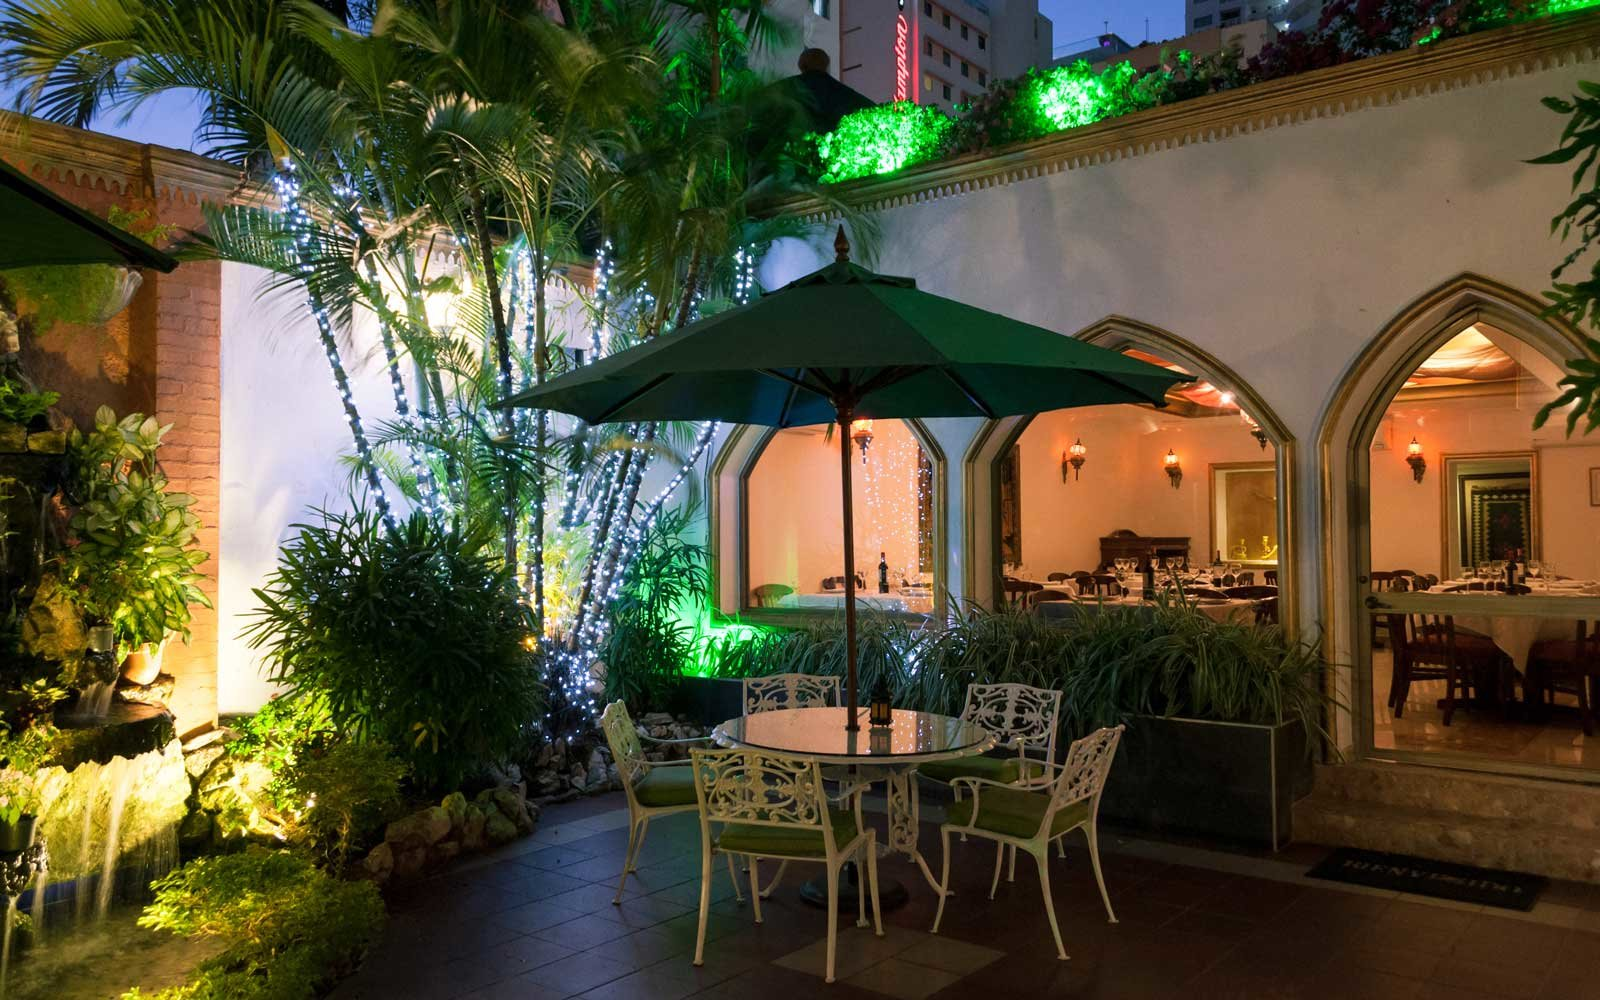 Classic Restaurants in Cartagena